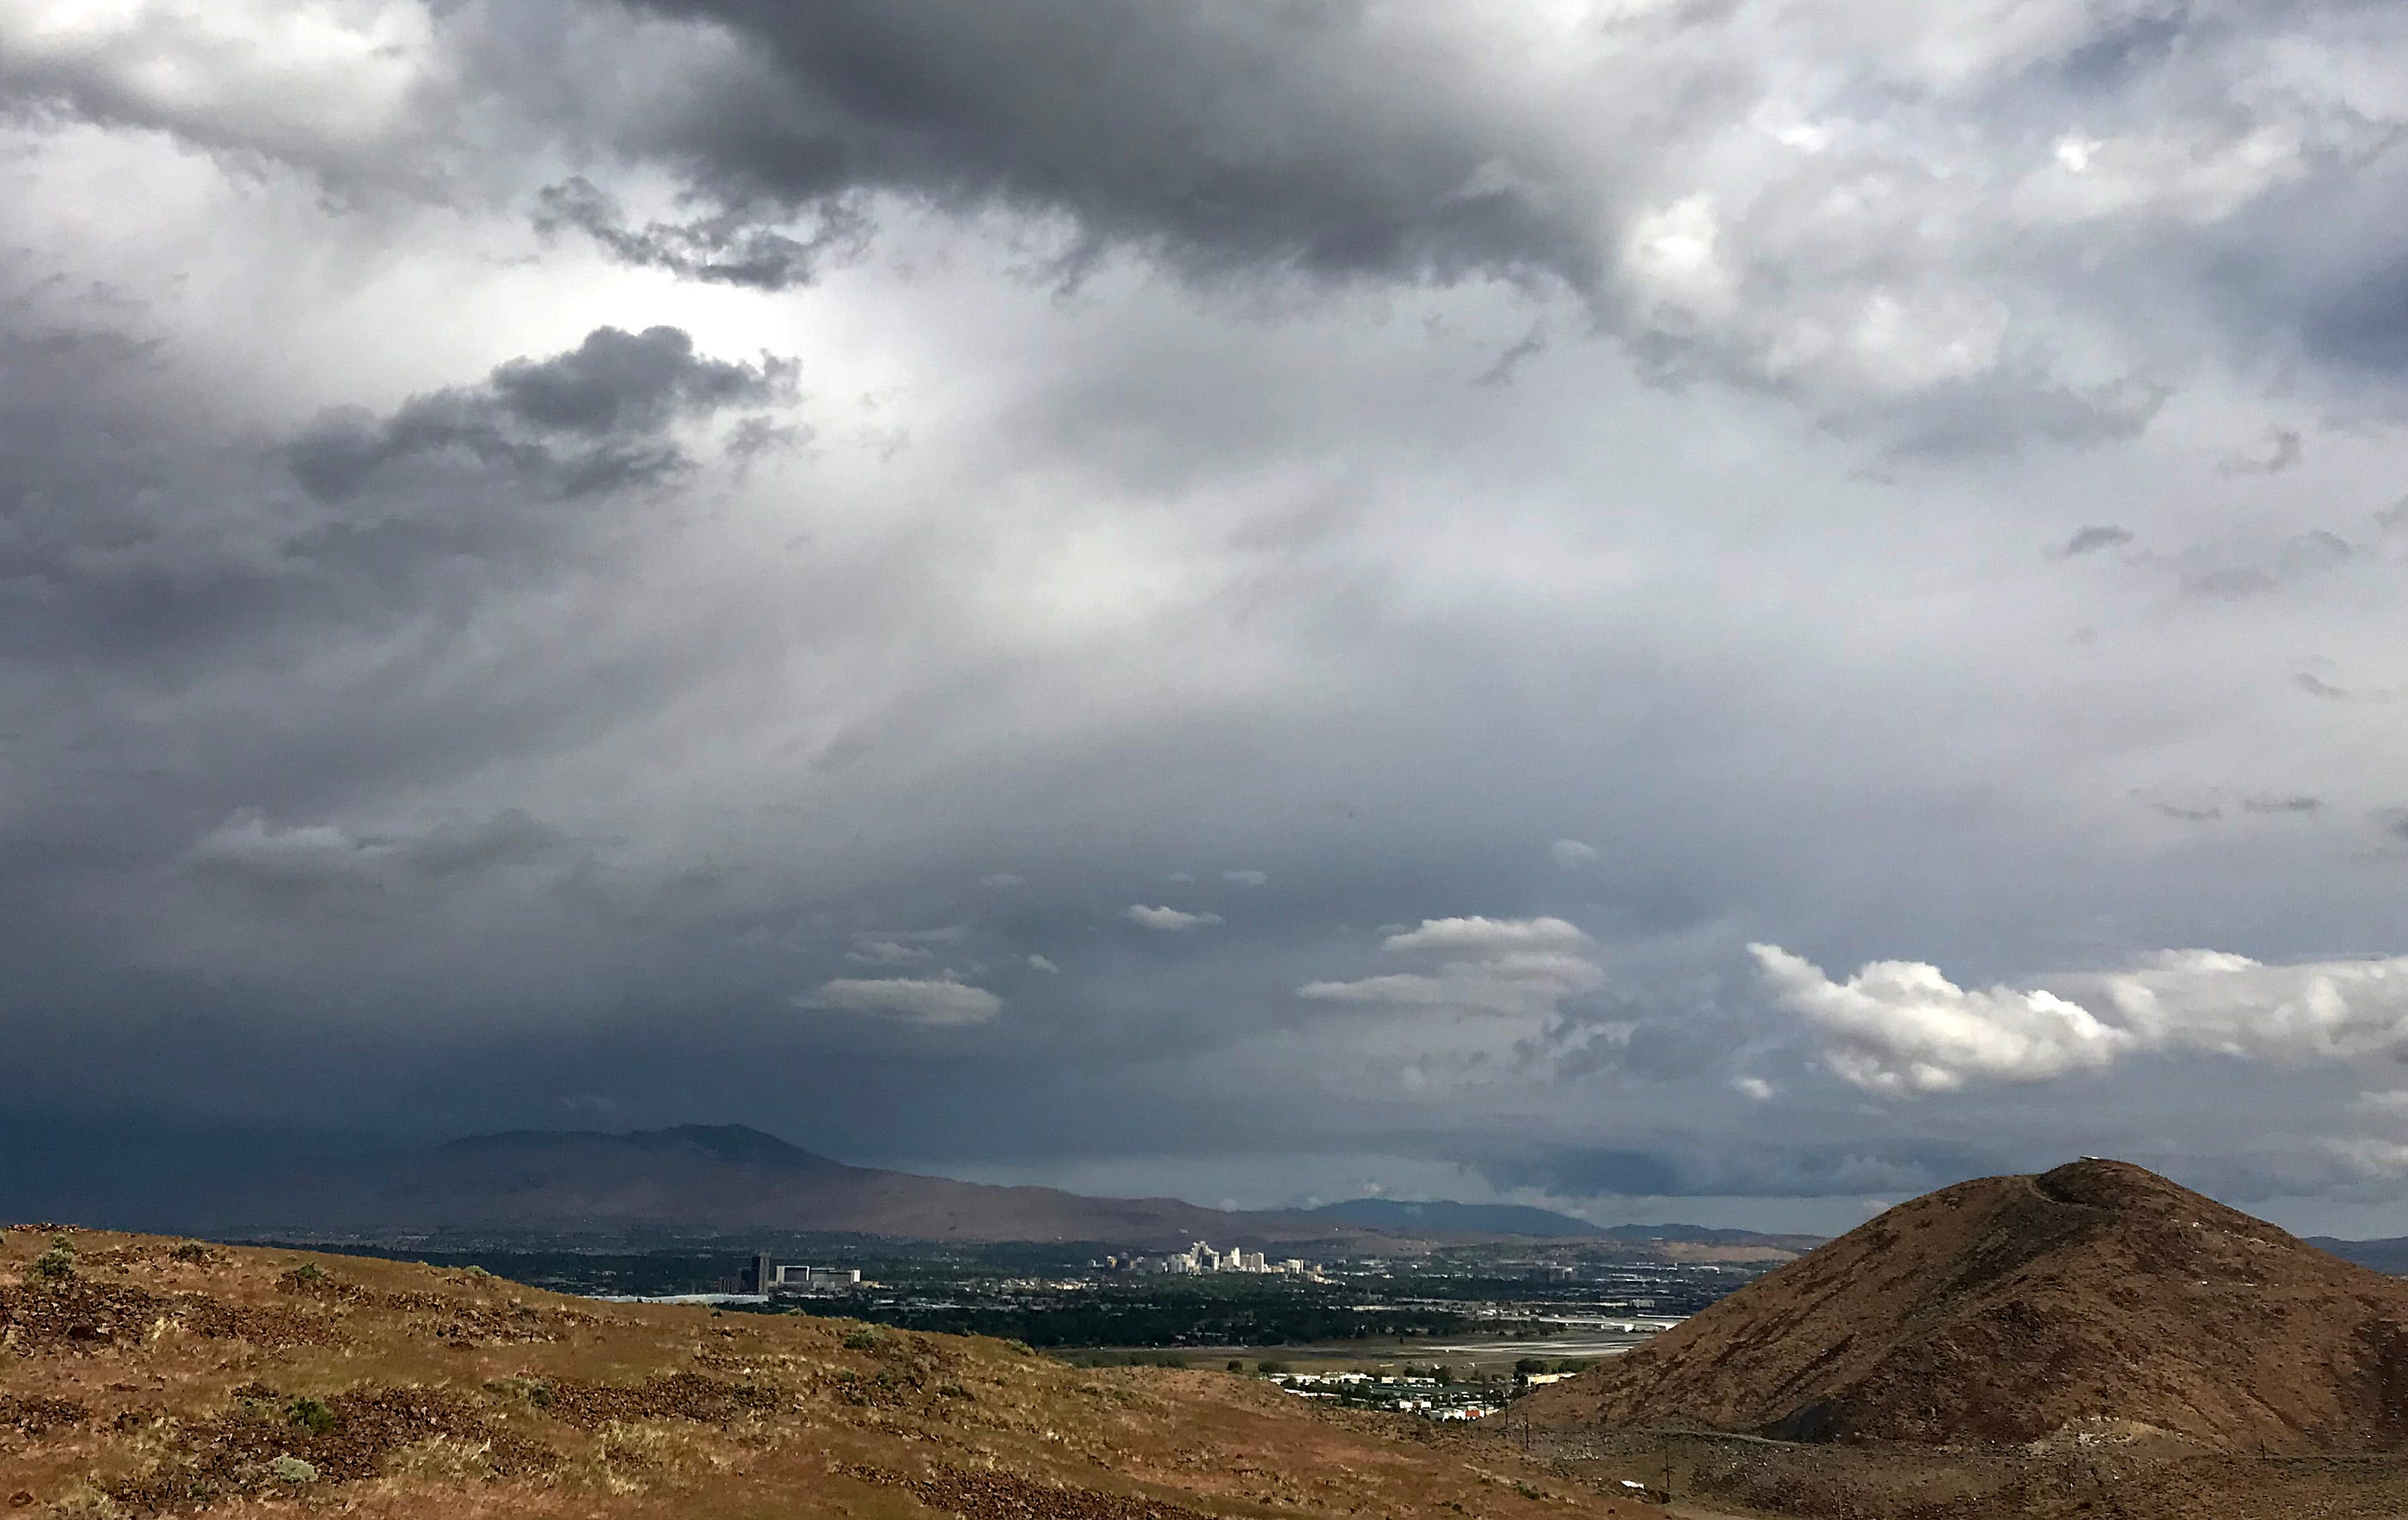 After weeks of heat and smoke, Reno could see storms, heavy rain Tuesday | Reno Gazette Journal